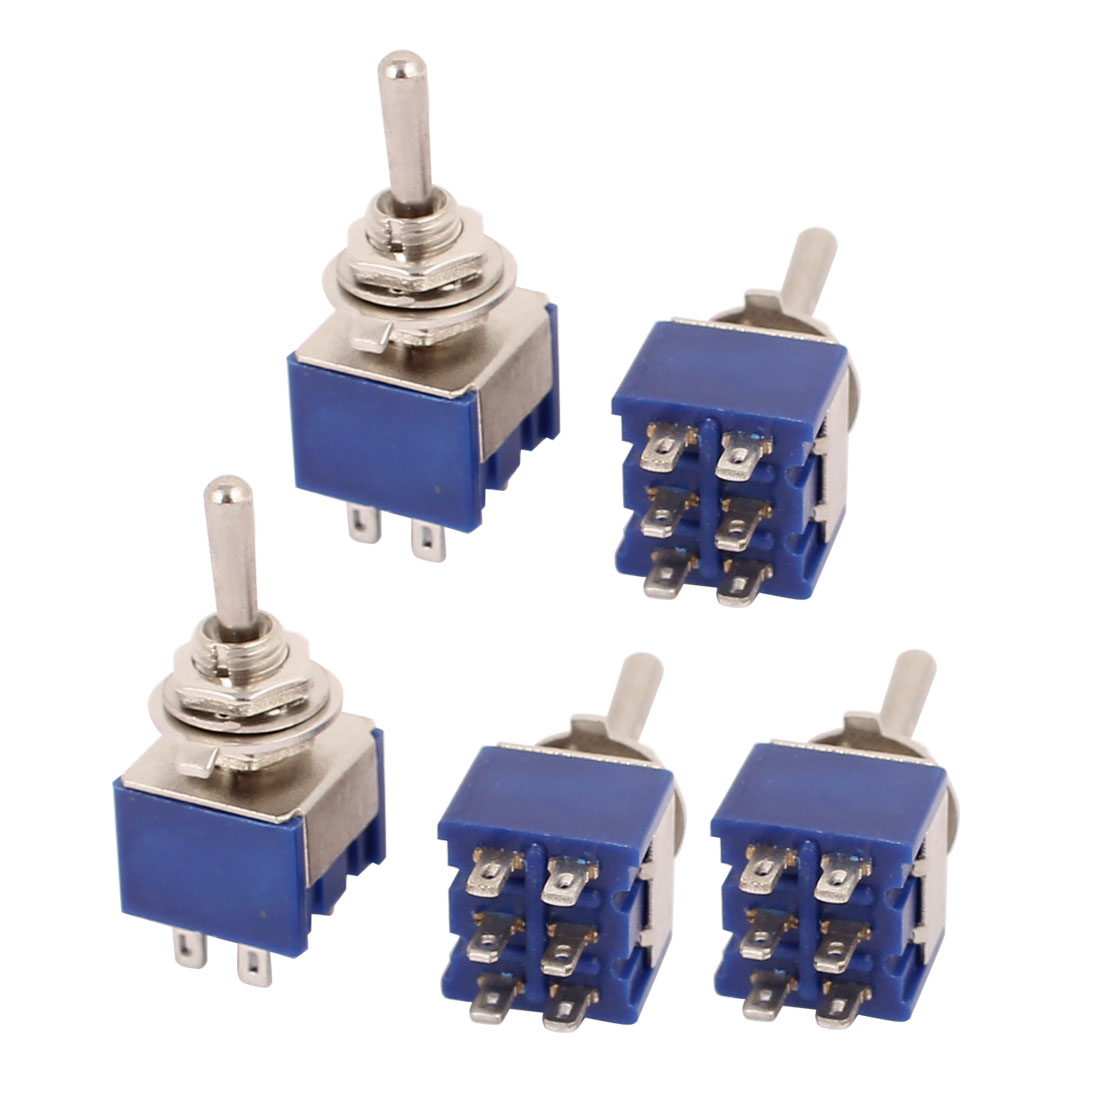 5 Pcs MTS-203 125V 6A ON/OFF/ON 3 Position DPDT 6 Pins Toggle Switch